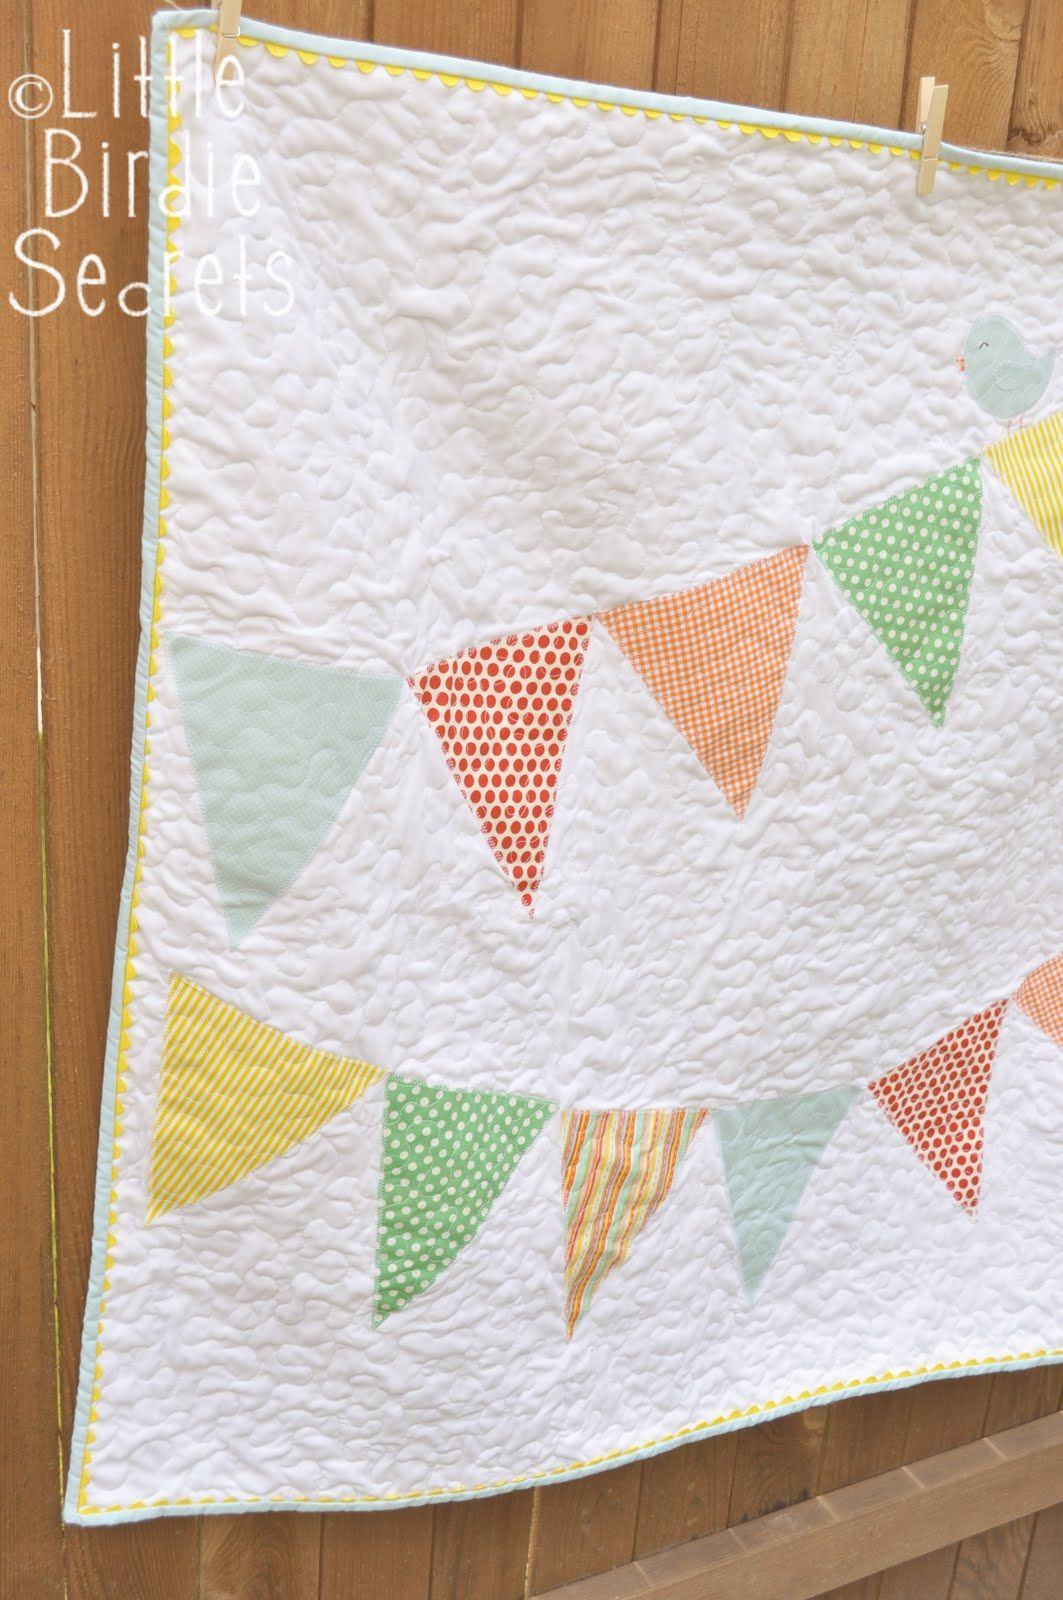 It's finally done! I made this simple banner (bunting) quilt for ... : quilted baby bunting - Adamdwight.com